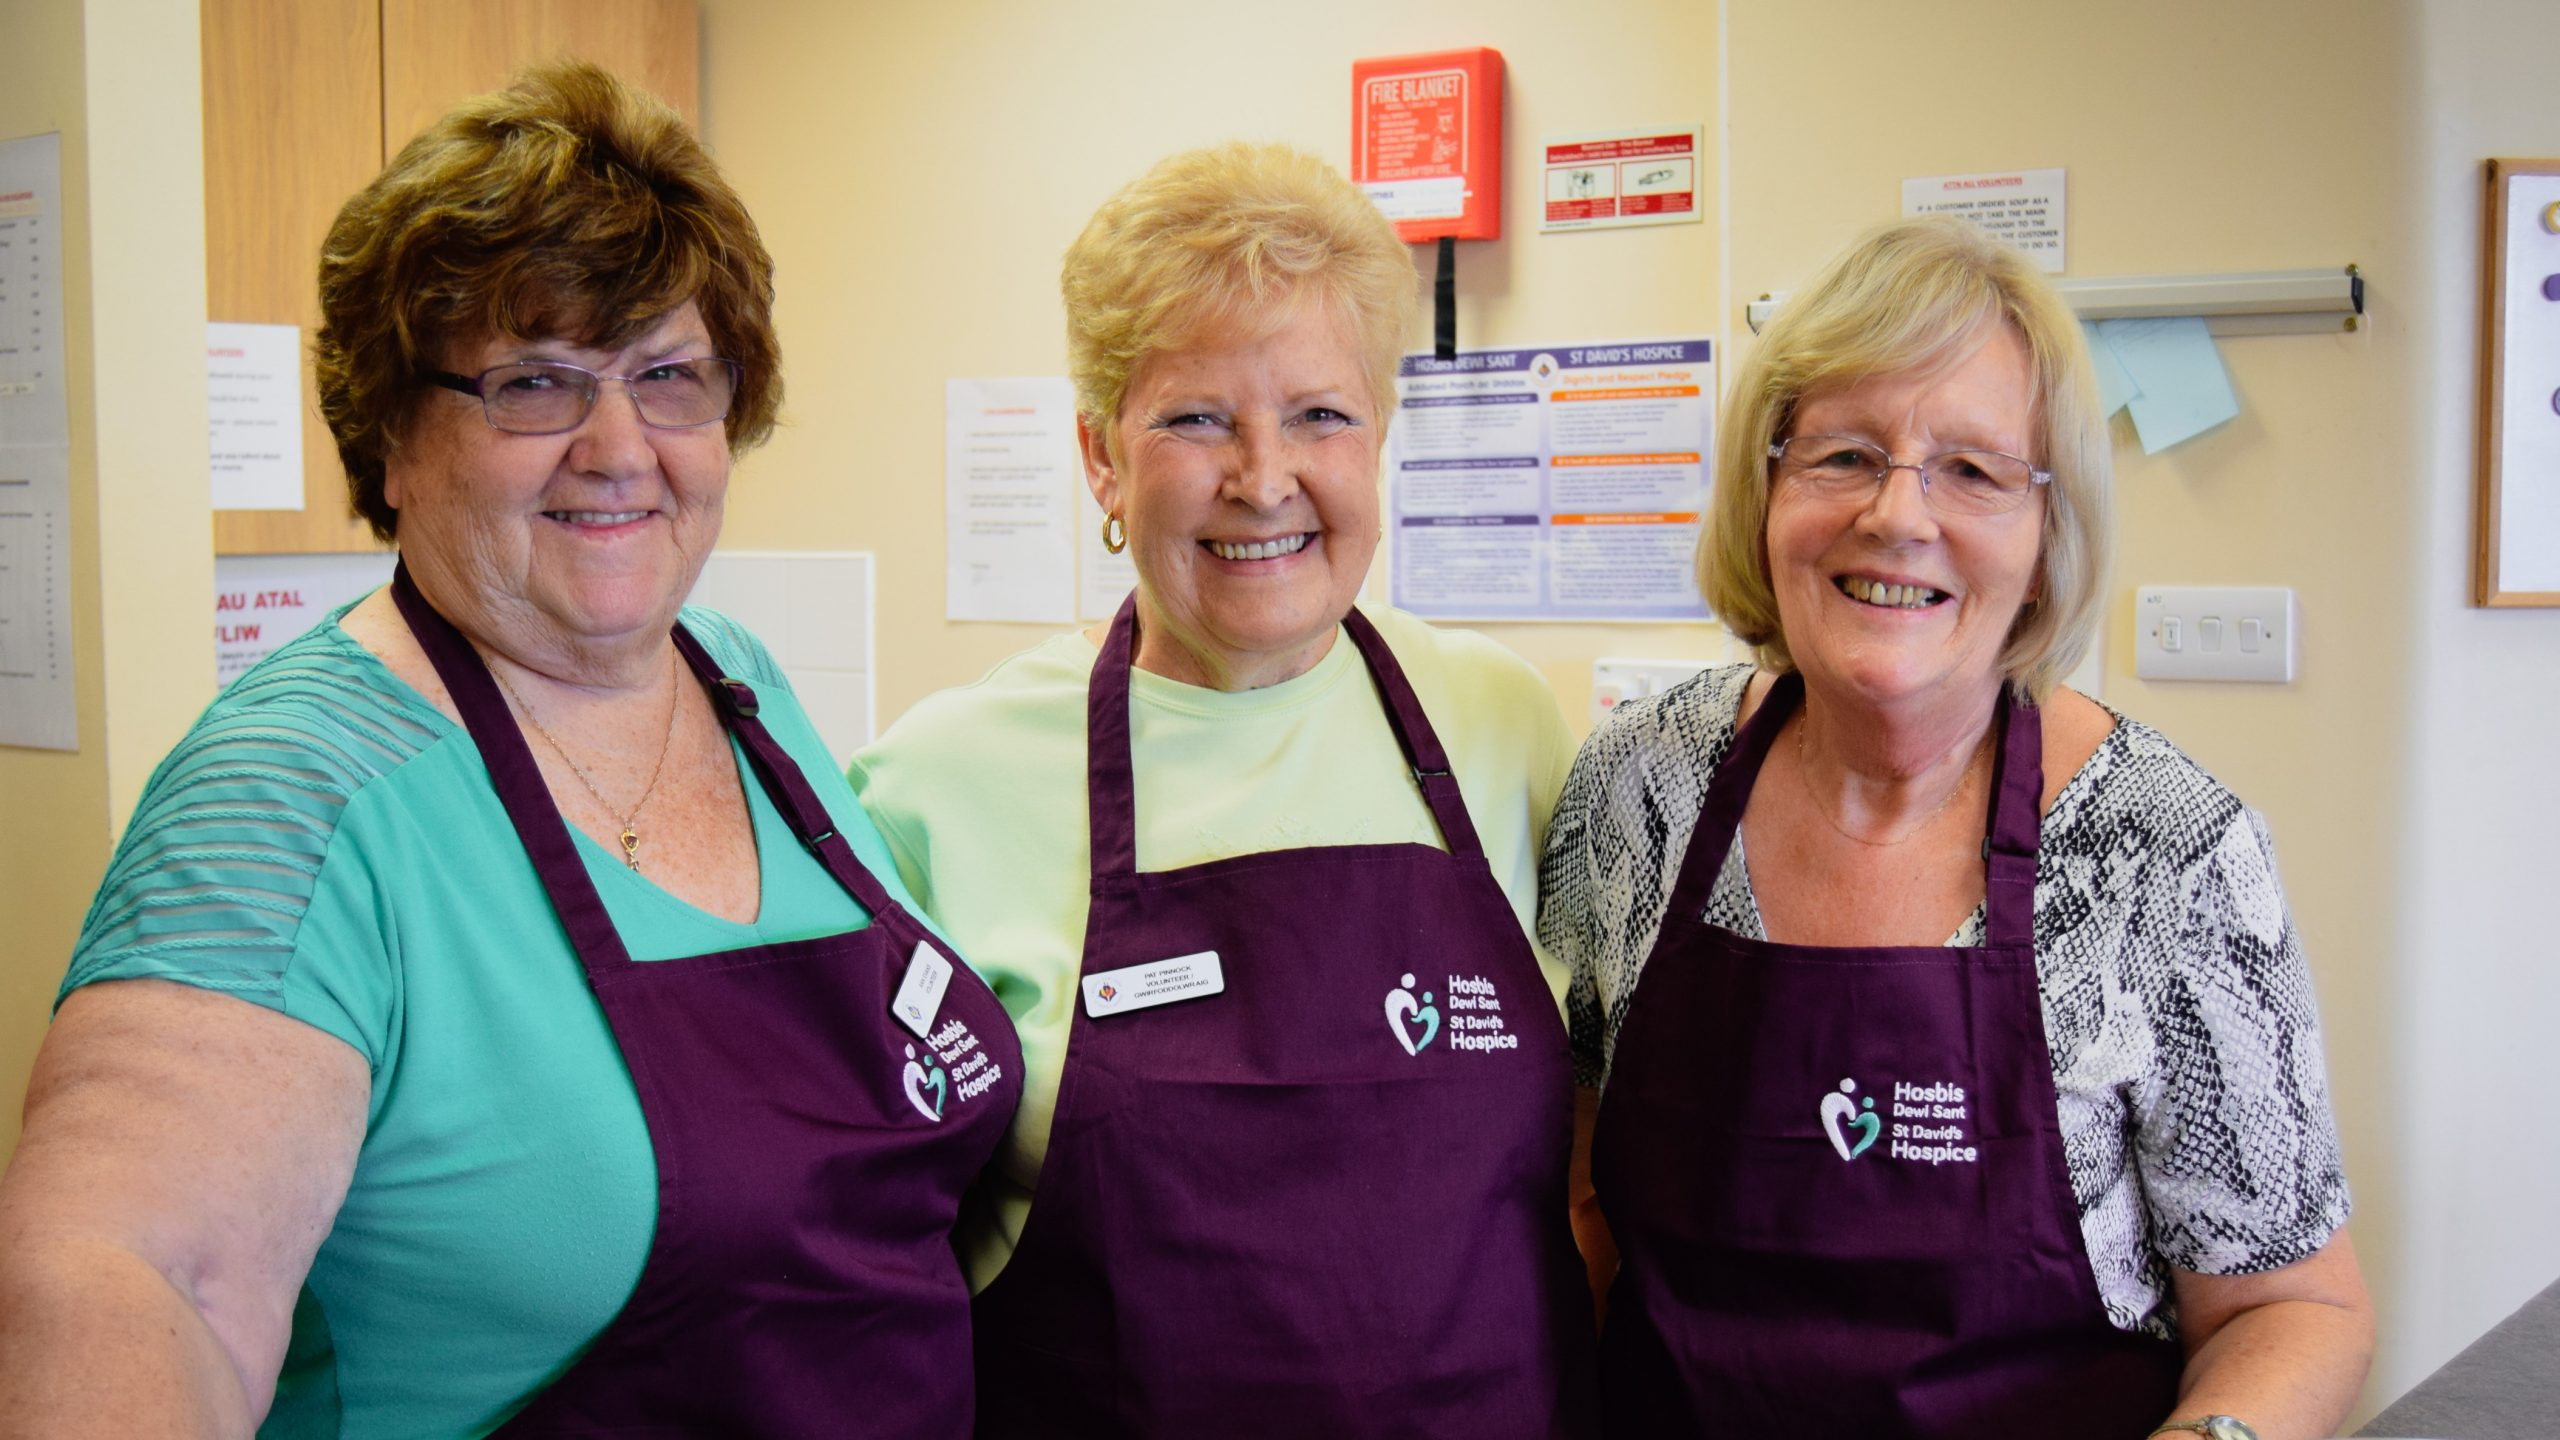 Local hospice is looking for local people to join its volunteer team